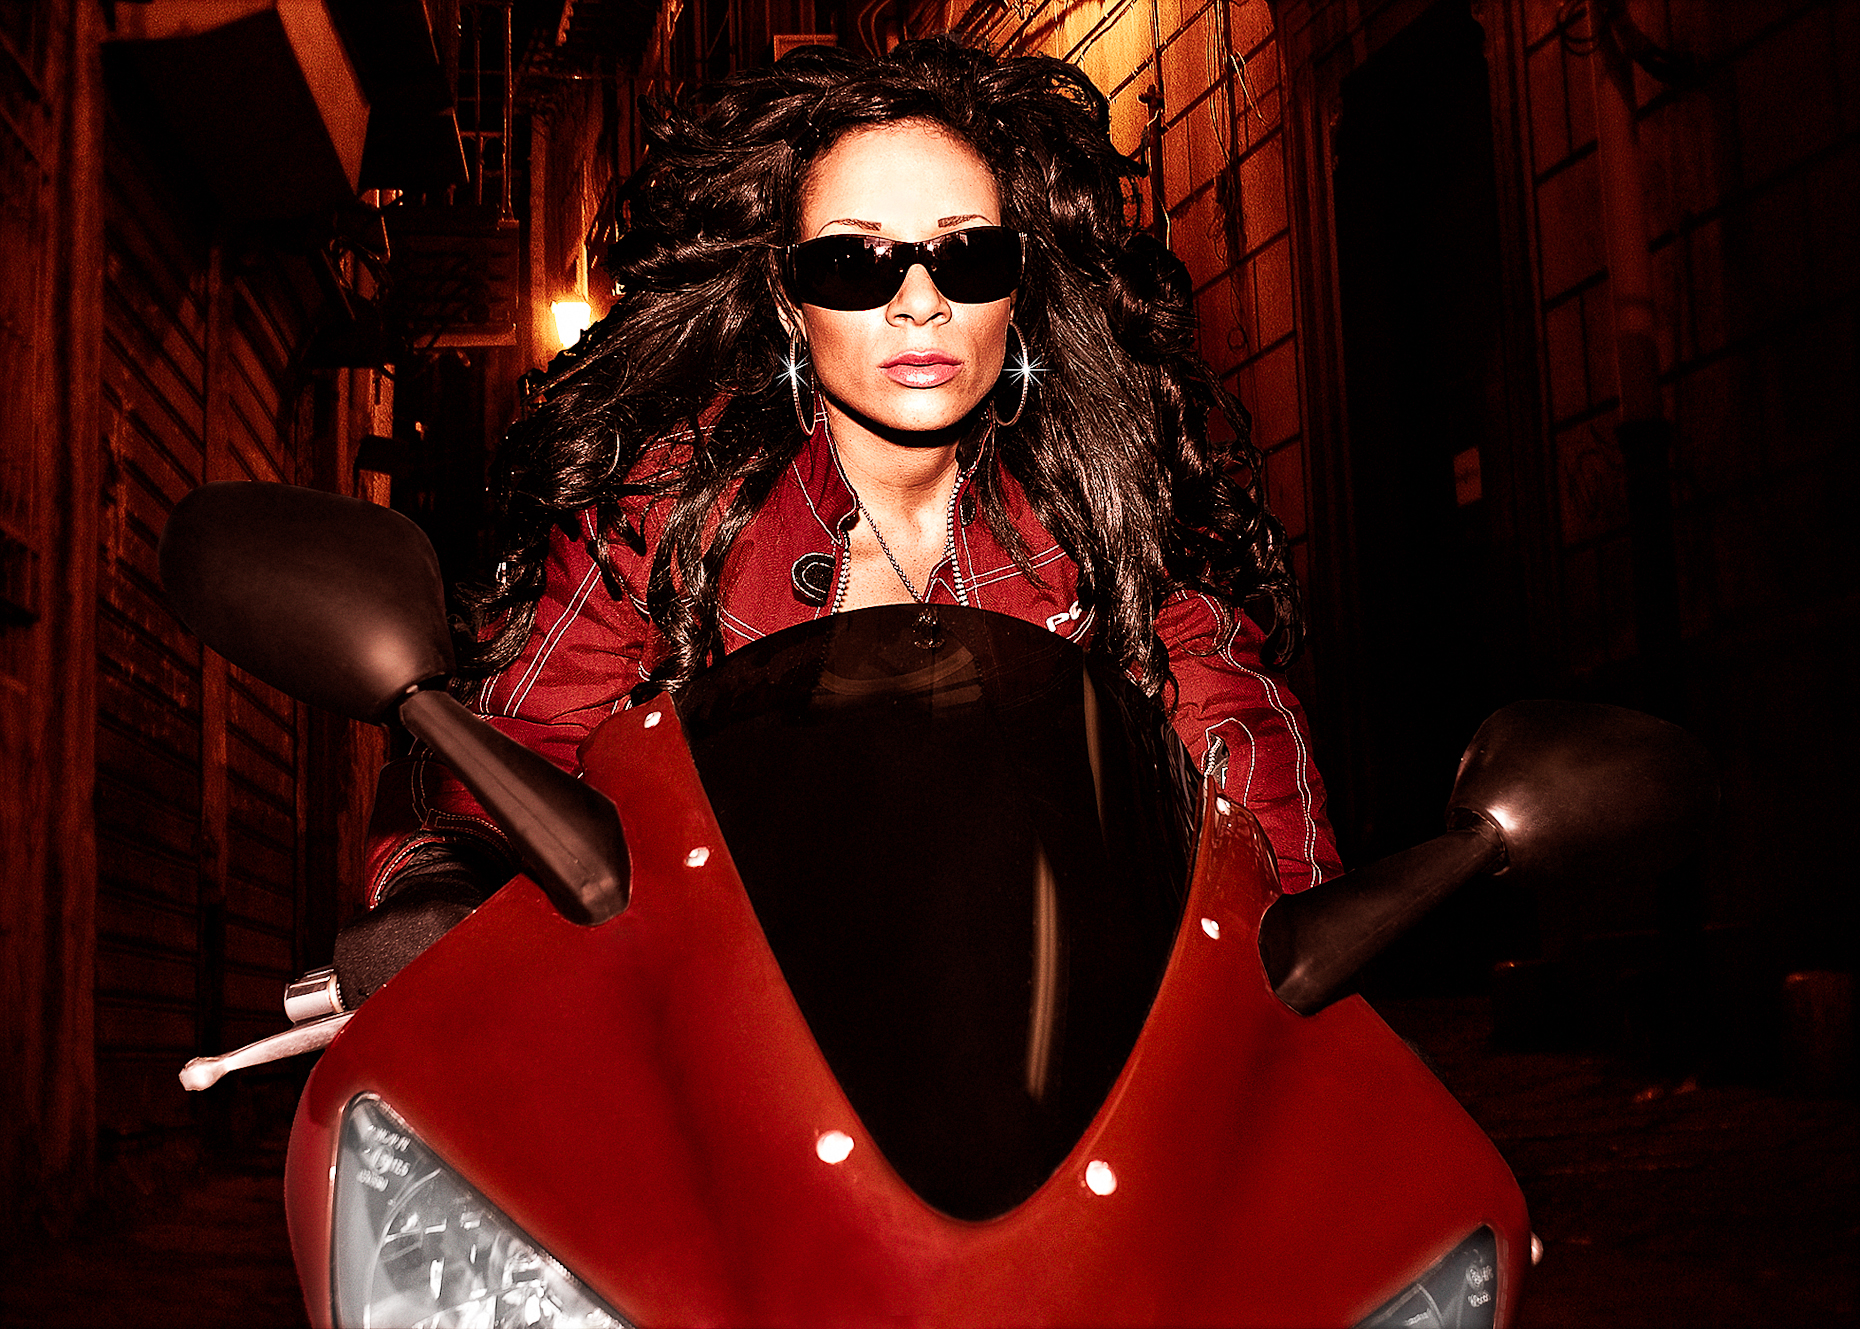 Victoria Beckham Bike in alley night rider